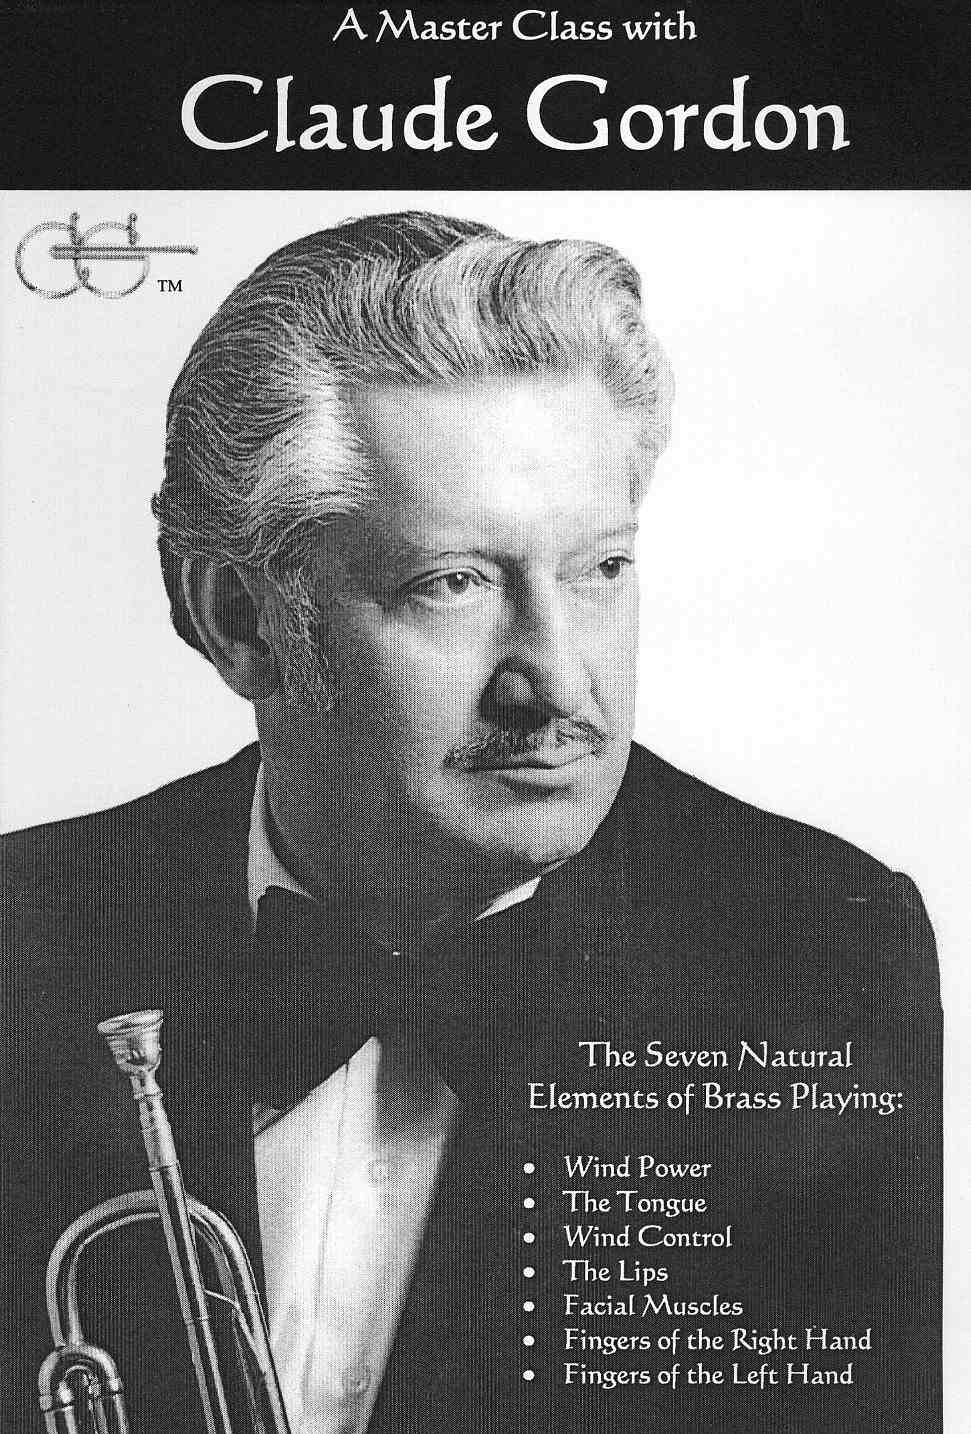 The Seven Natural Elements of Brass Playing Video by Claude Gordon